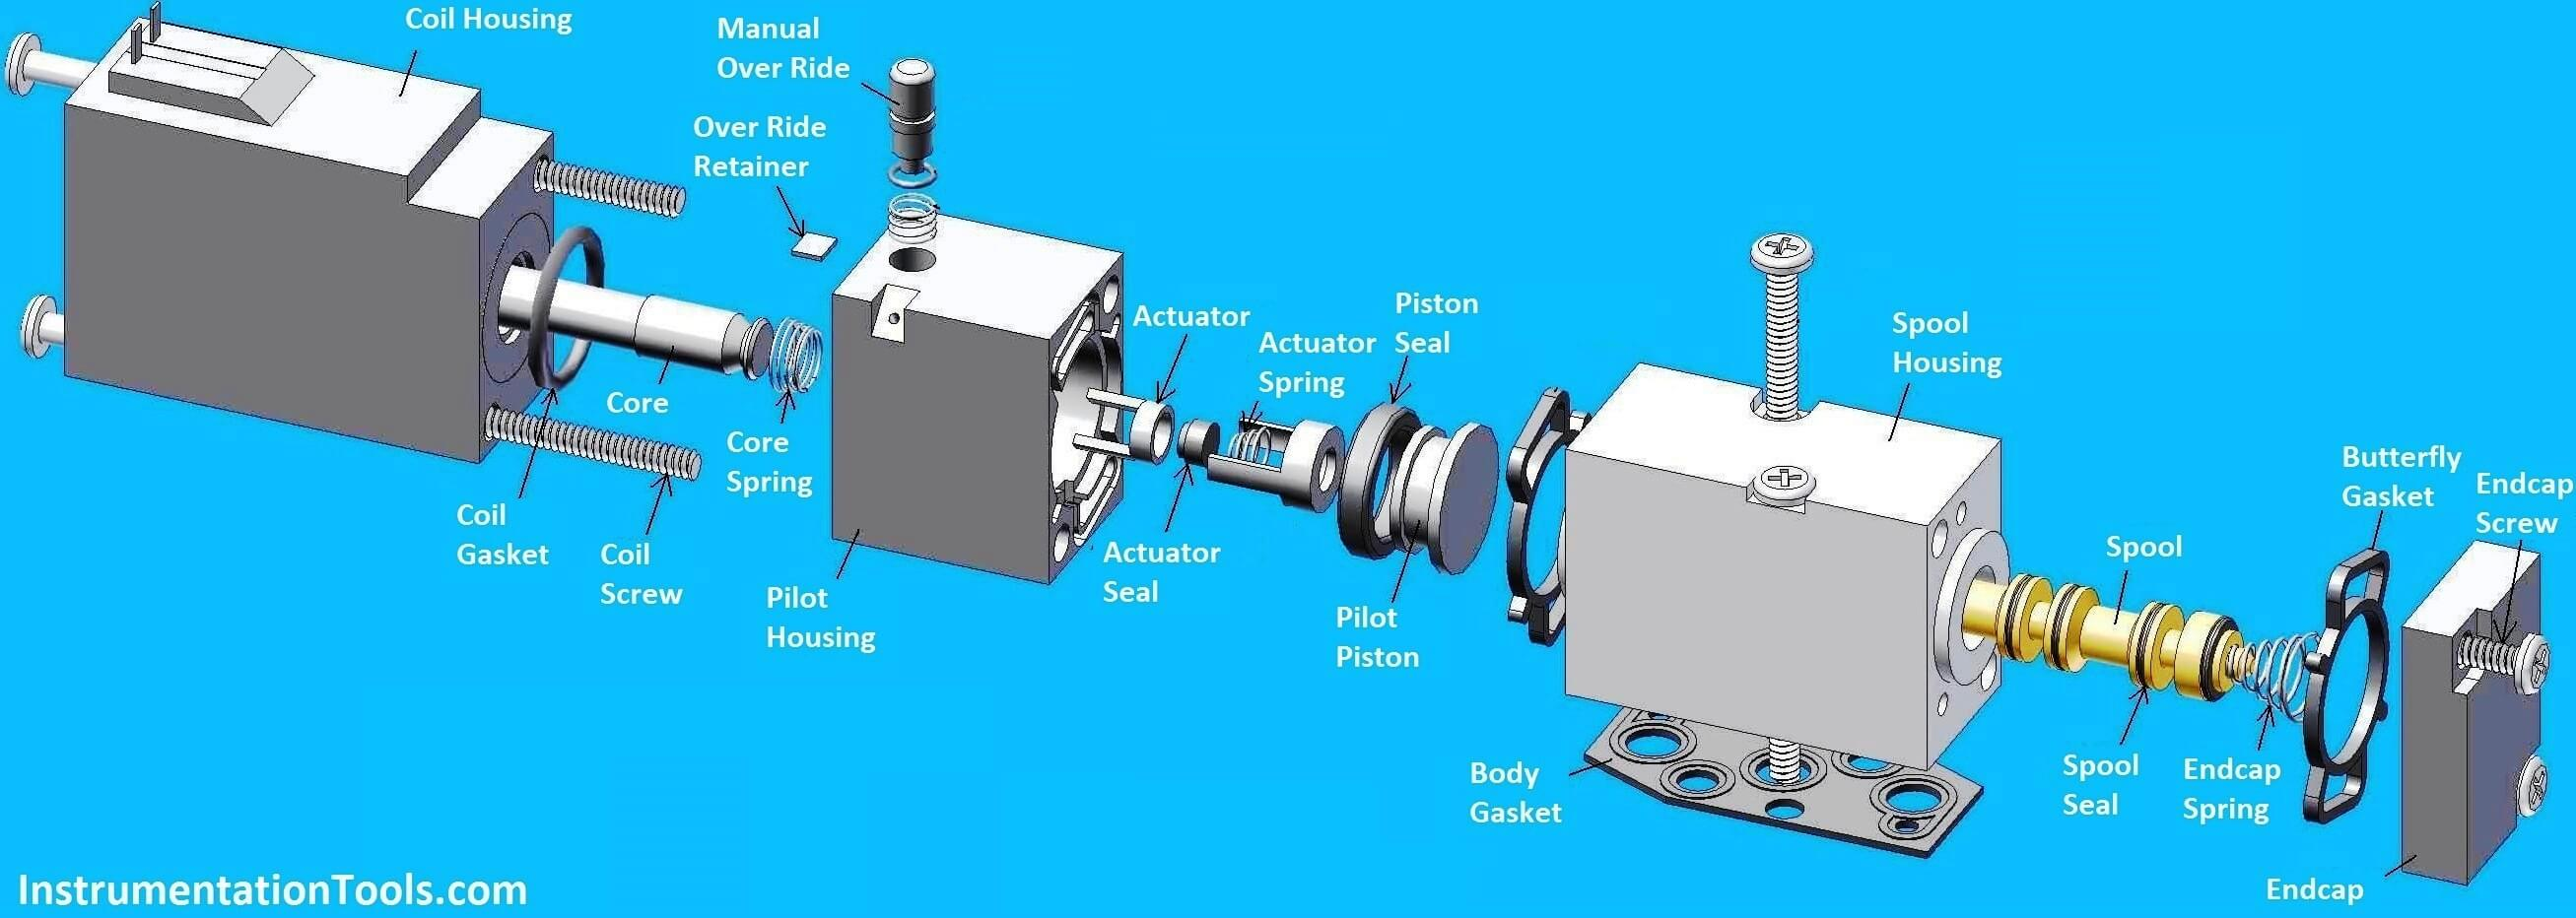 four-way-solenoid-valve-parts-and-principle